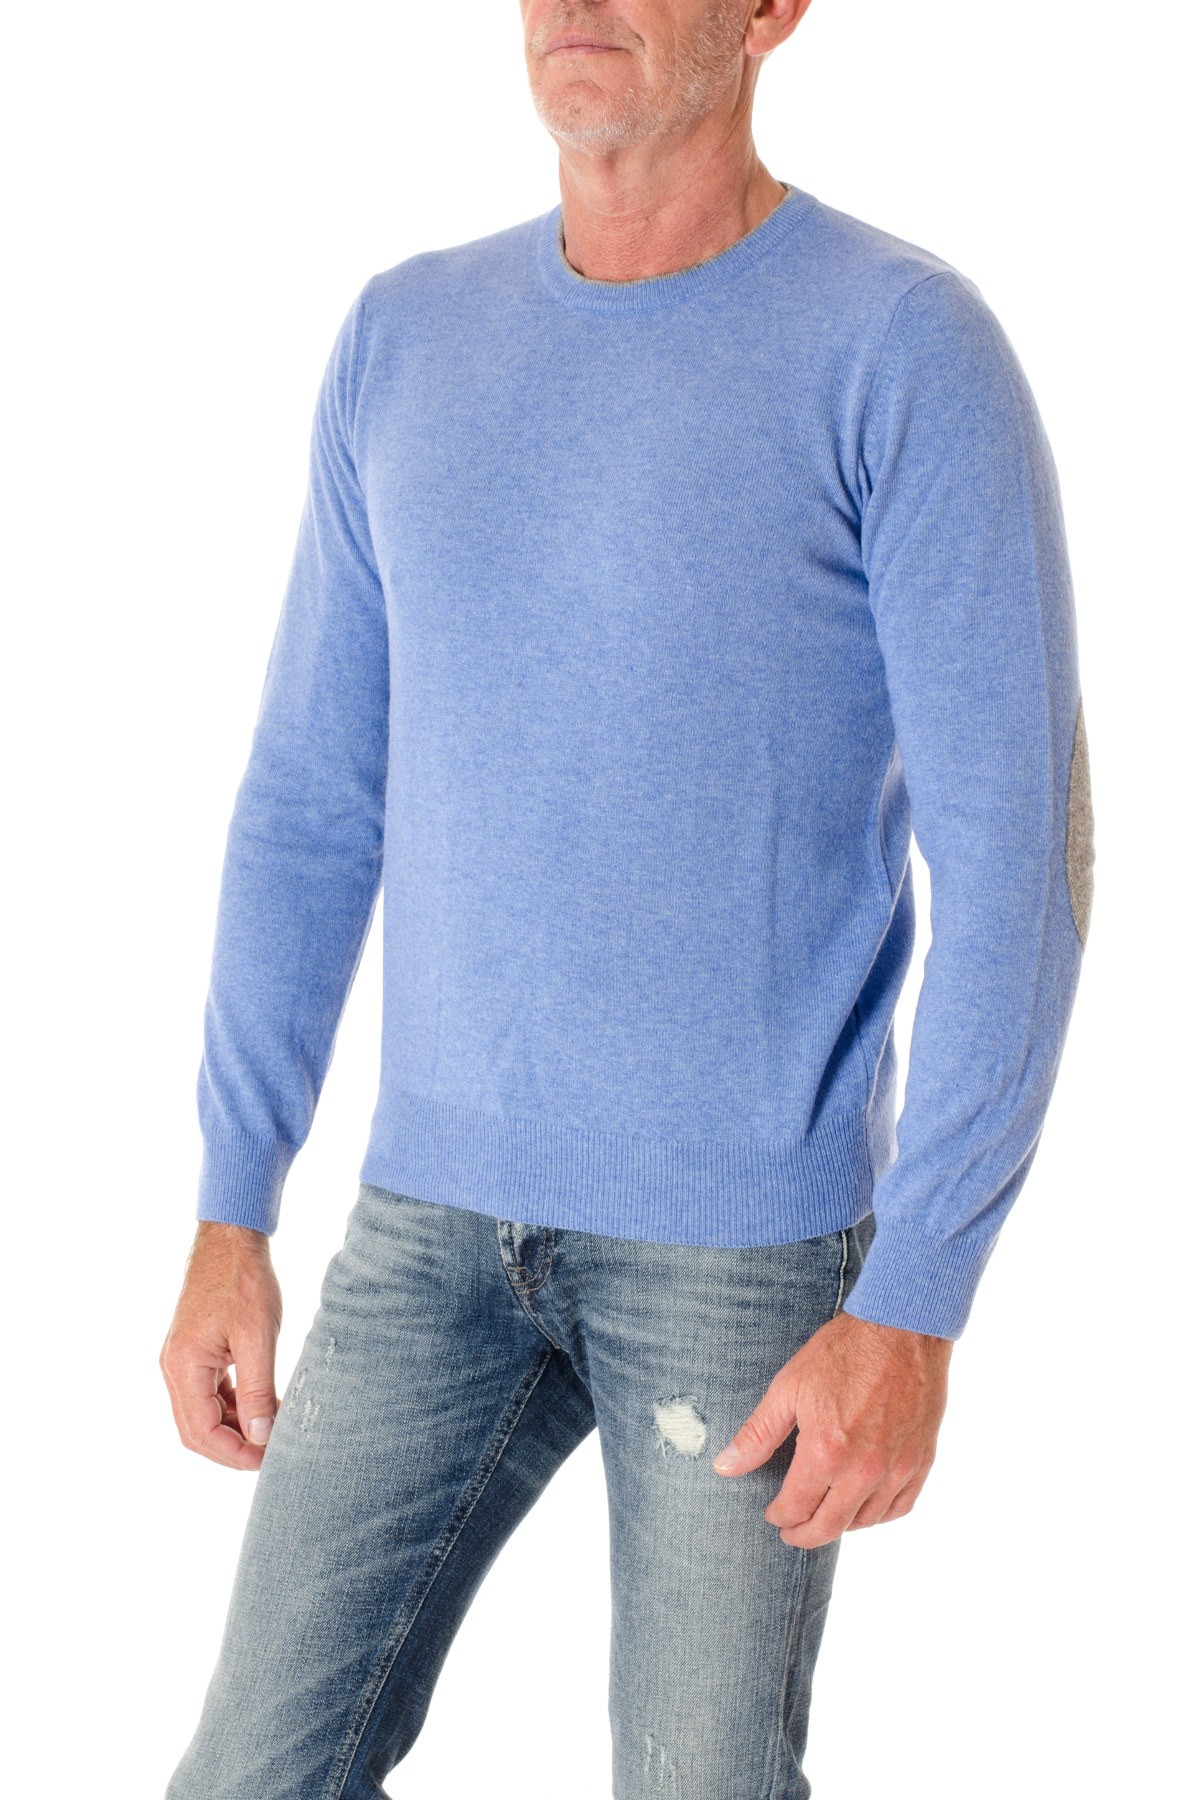 F/W 16-17 Sky blue crewnek sweater for men RIONE FONTANA - Rione ...